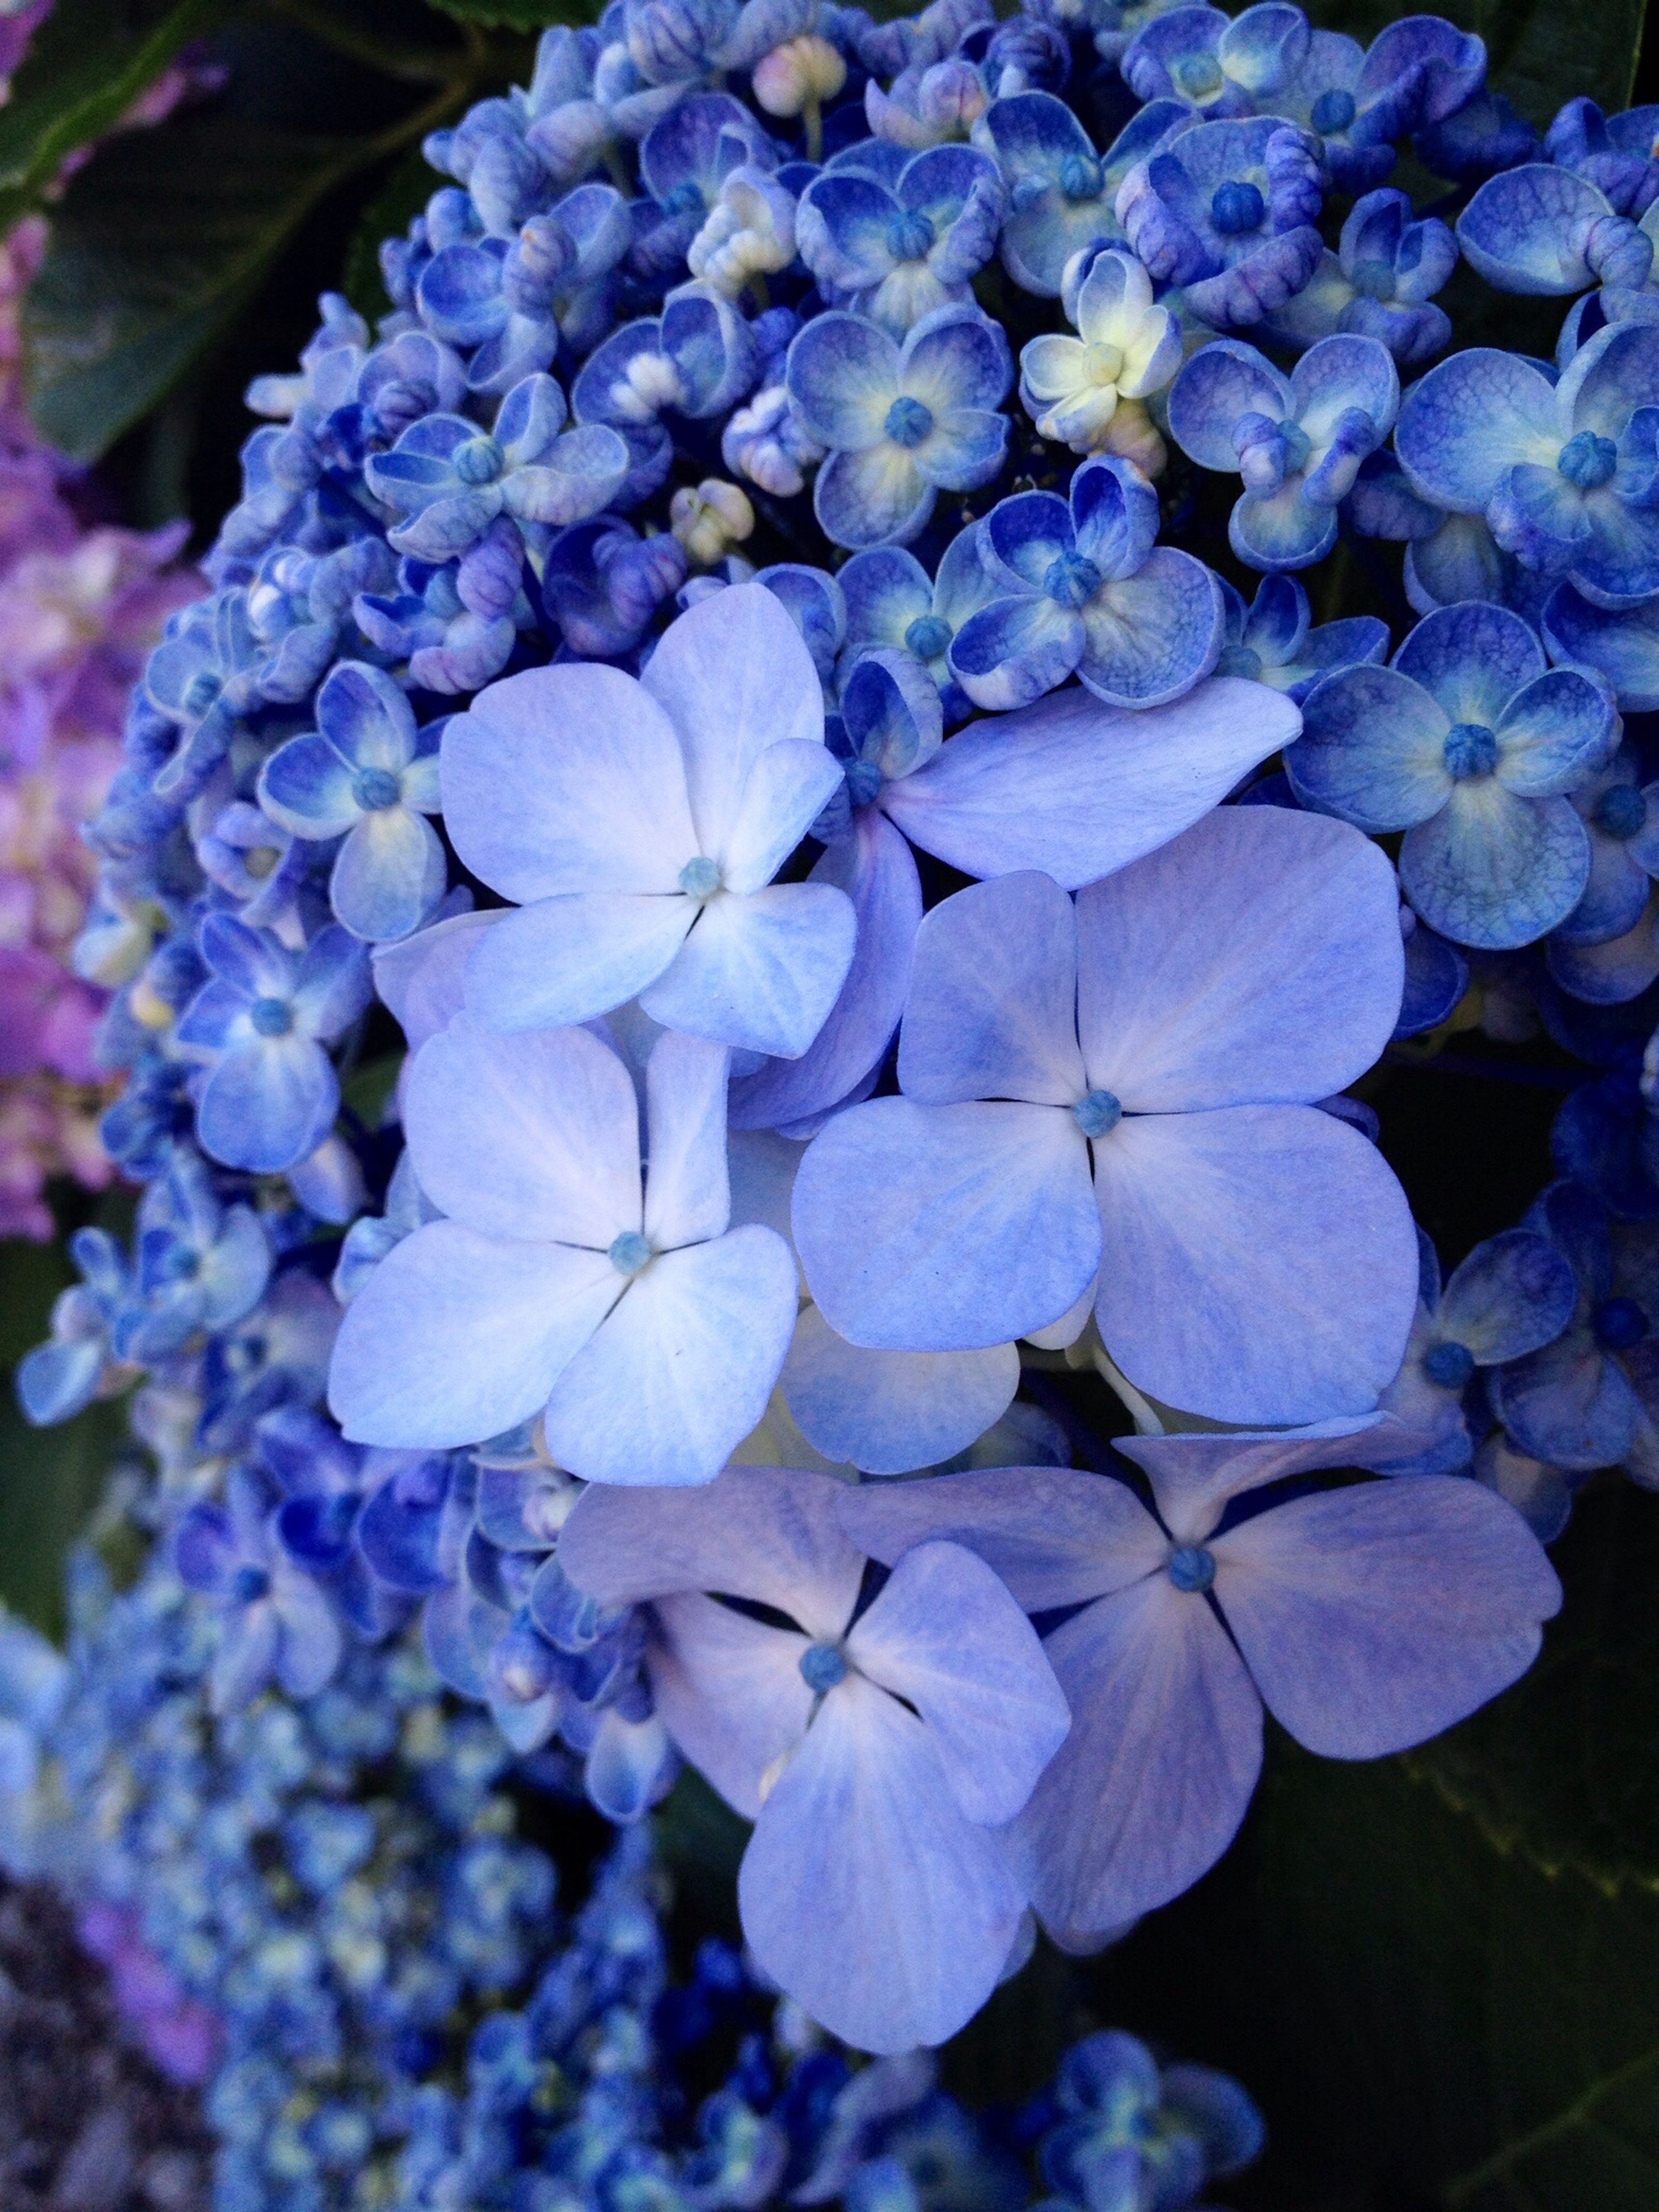 flower, freshness, purple, fragility, growth, beauty in nature, petal, flower head, blue, nature, close-up, plant, hydrangea, blooming, in bloom, focus on foreground, park - man made space, botany, high angle view, outdoors